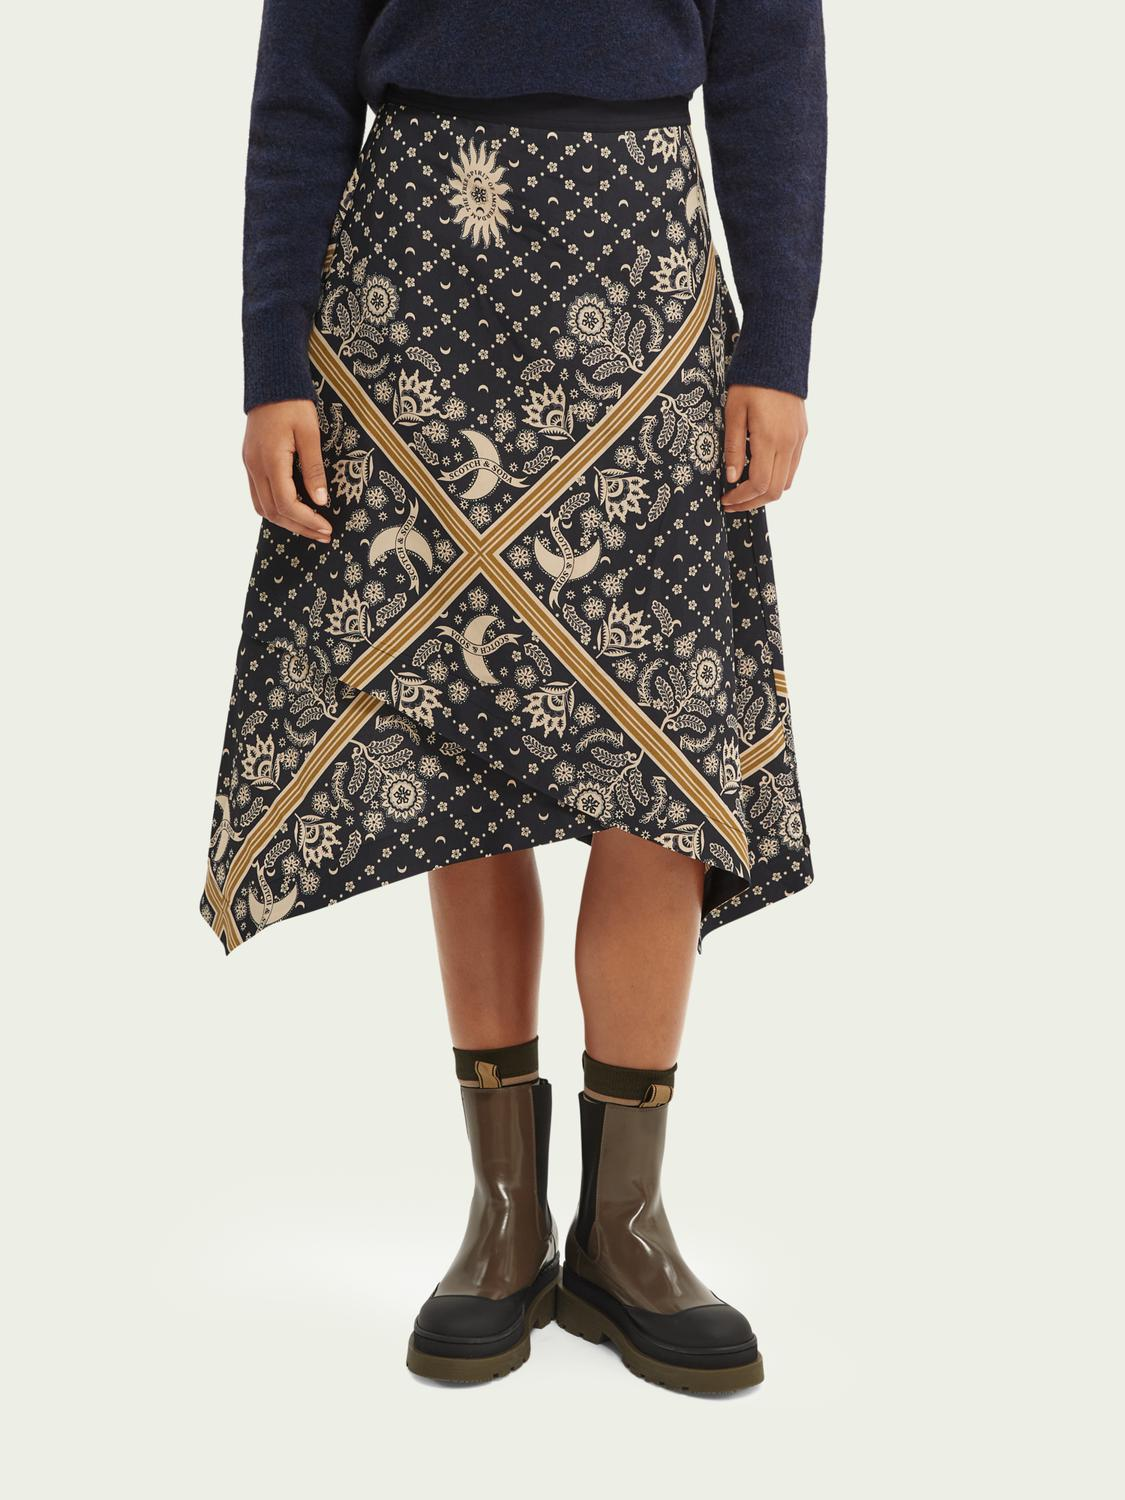 Double layer printed skirt